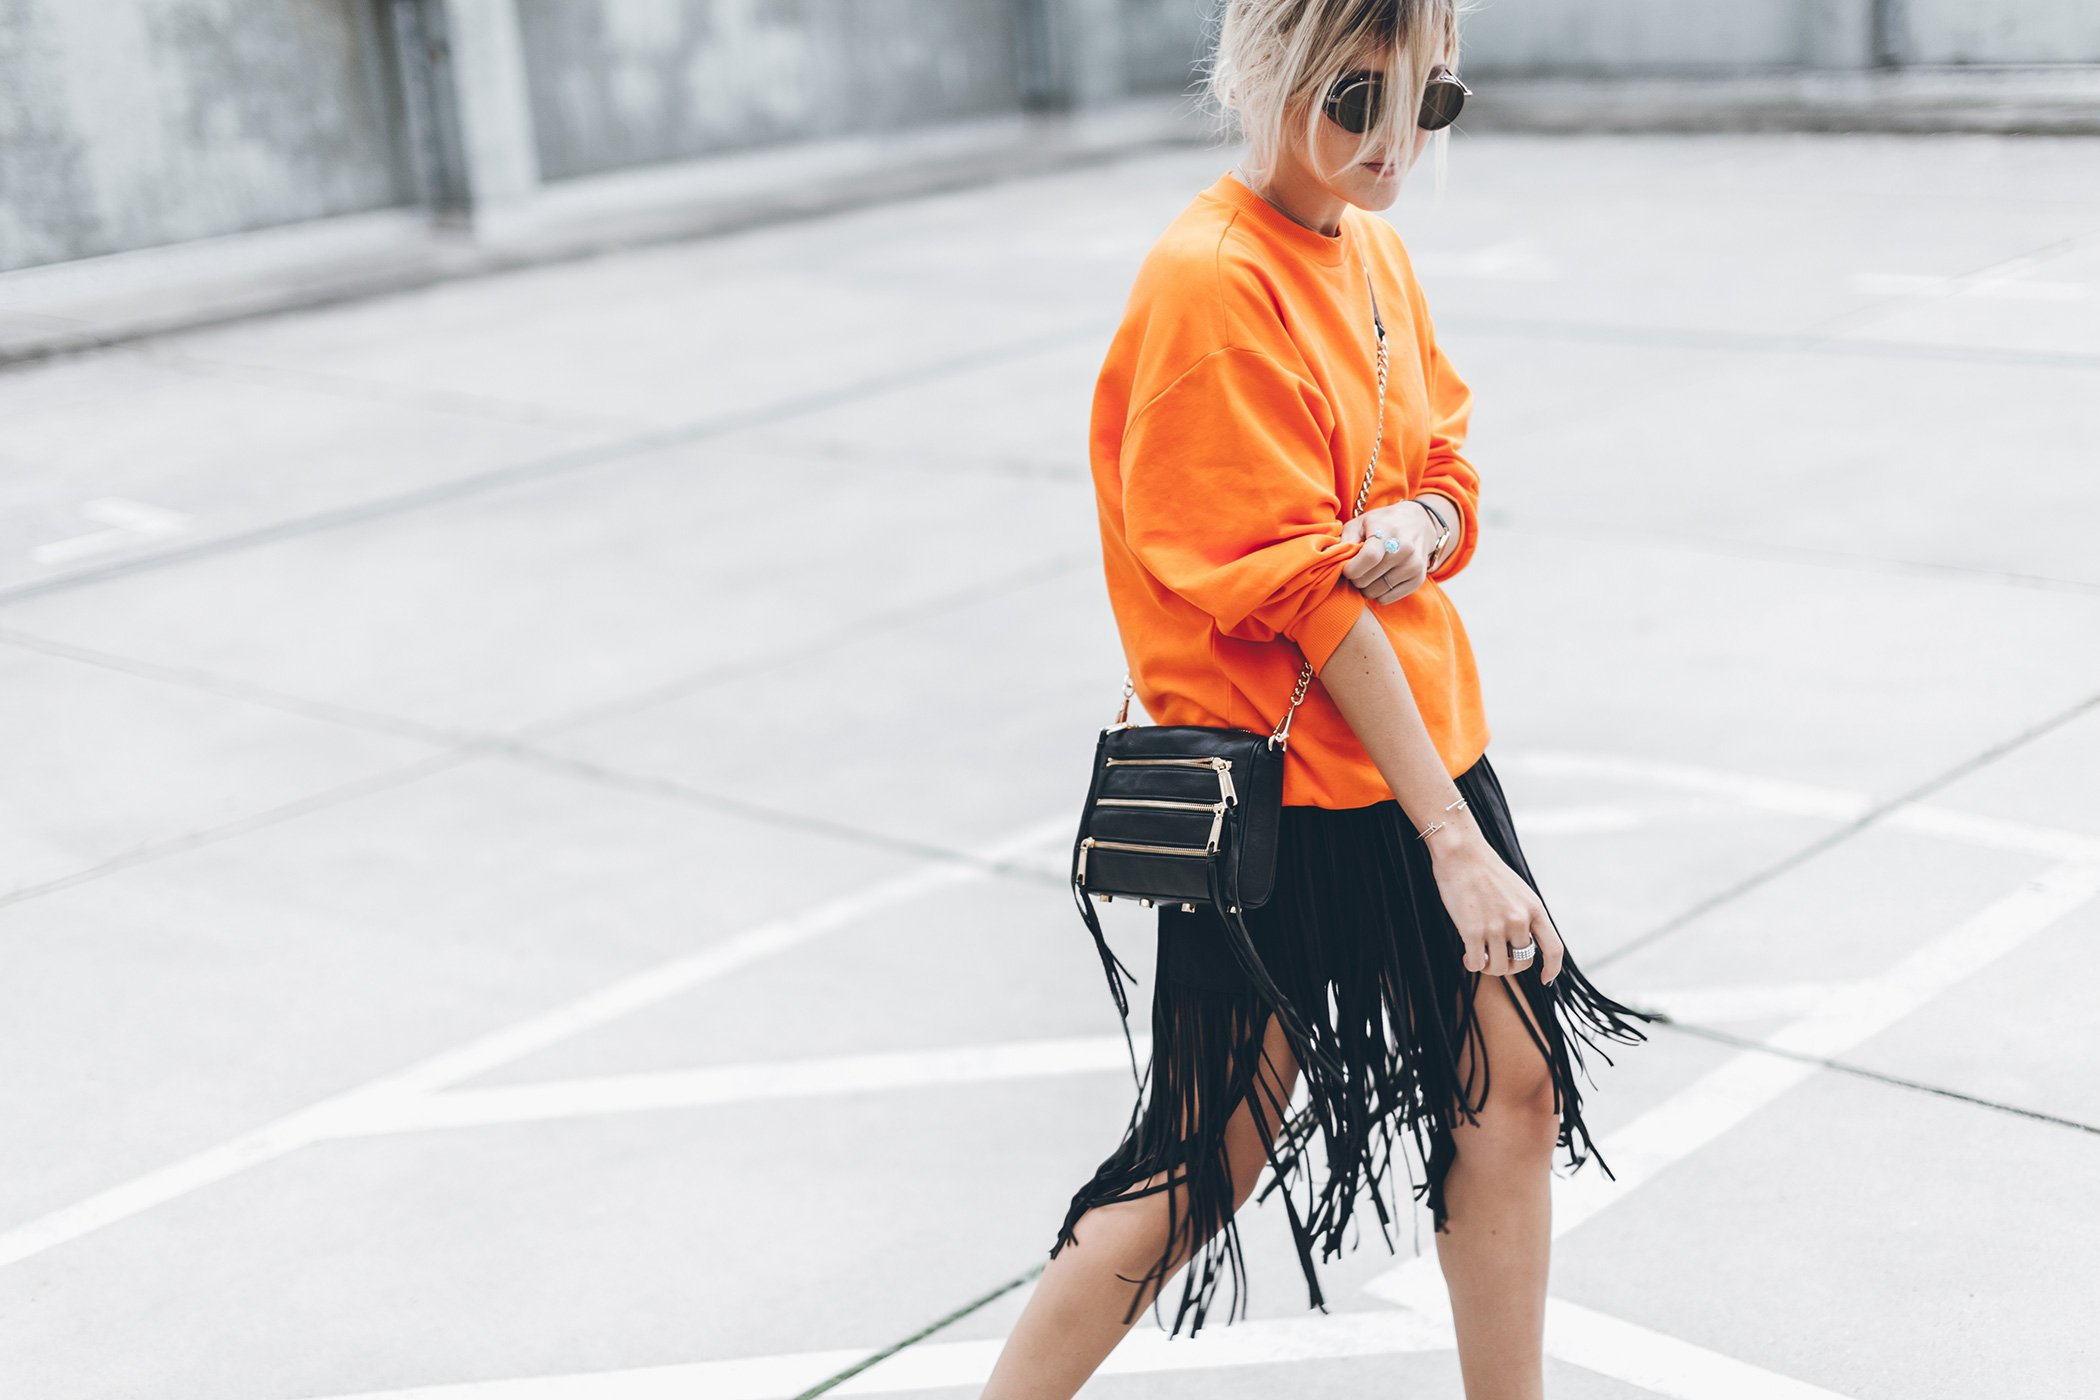 mikuta-fringe-skirt-orange-sweater-2